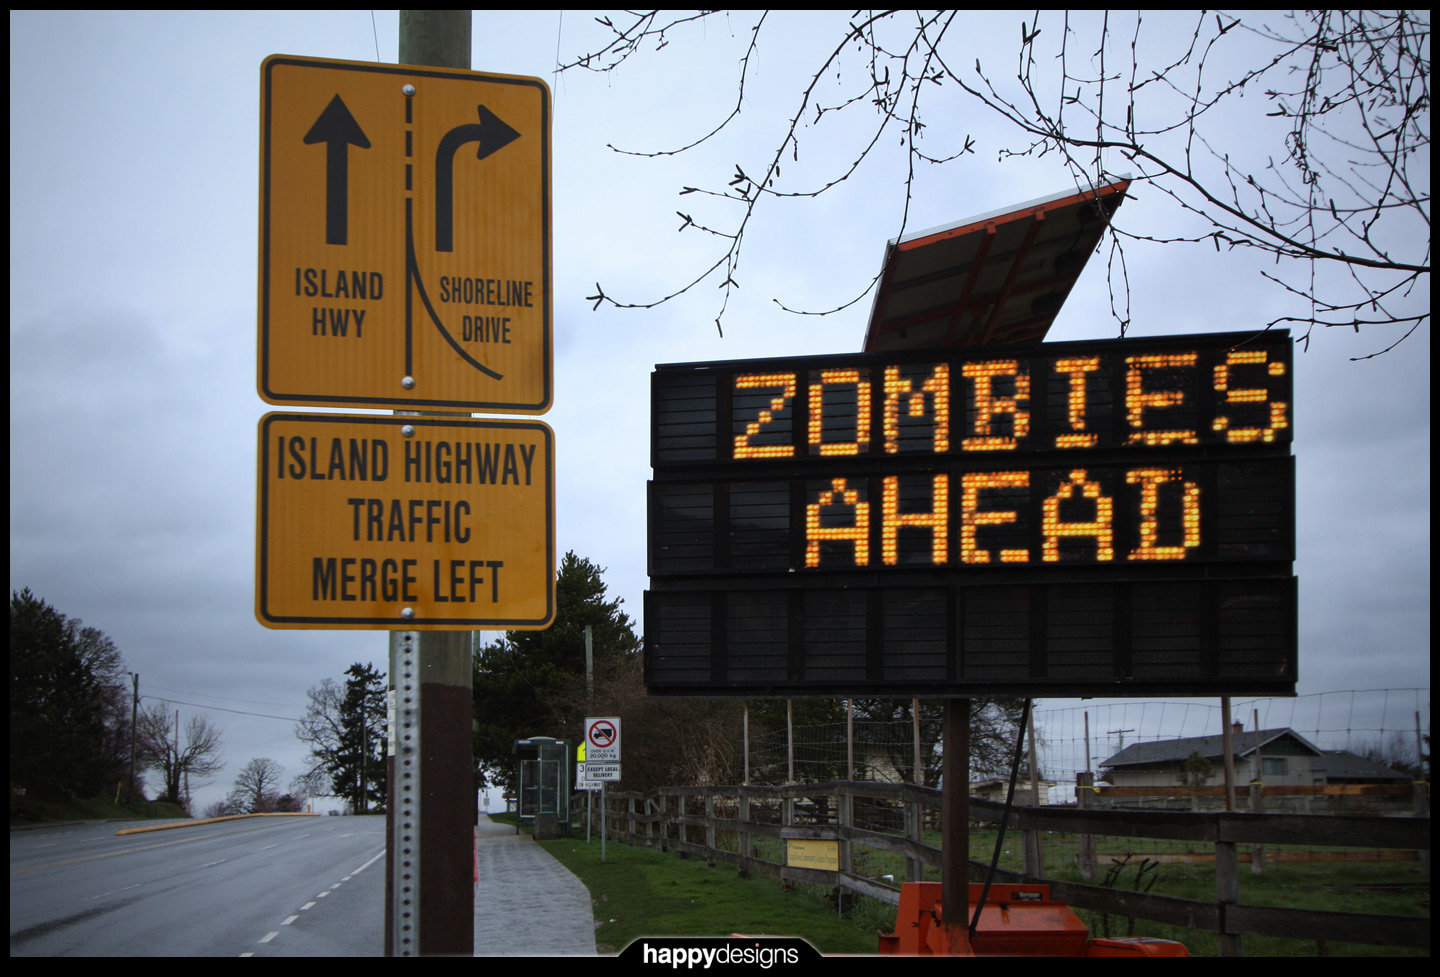 20110302 - ZOMBIES AHEAD